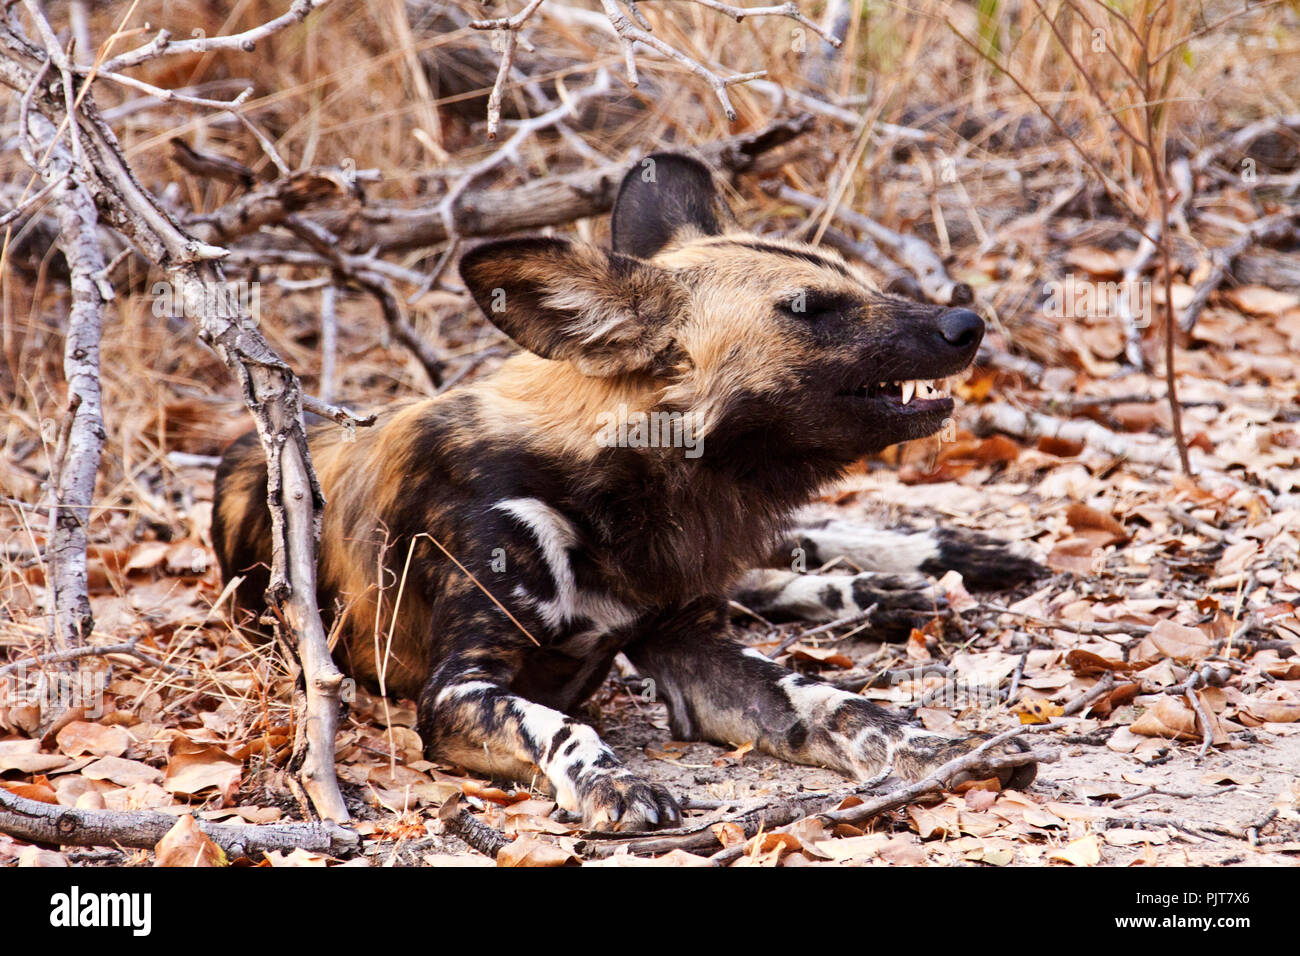 A Wild dog sneezes while having a well earned break from the twice daily hunt during the denning season when the pack has to provide for voracious mot - Stock Image